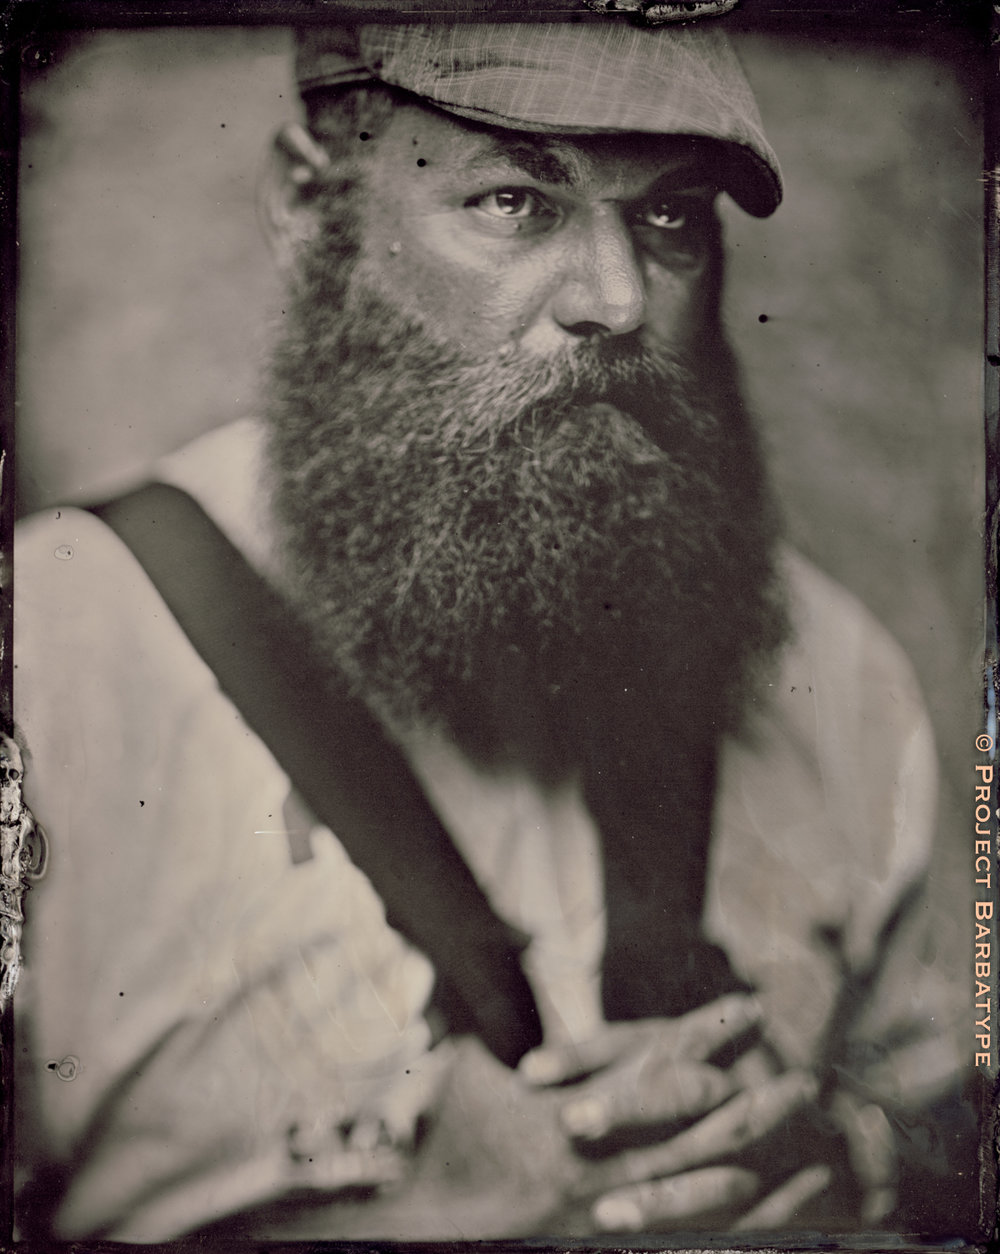 Quinton Crocker sporting a mighty fine beard, along with a newsboy cap and some spiffy suspenders.